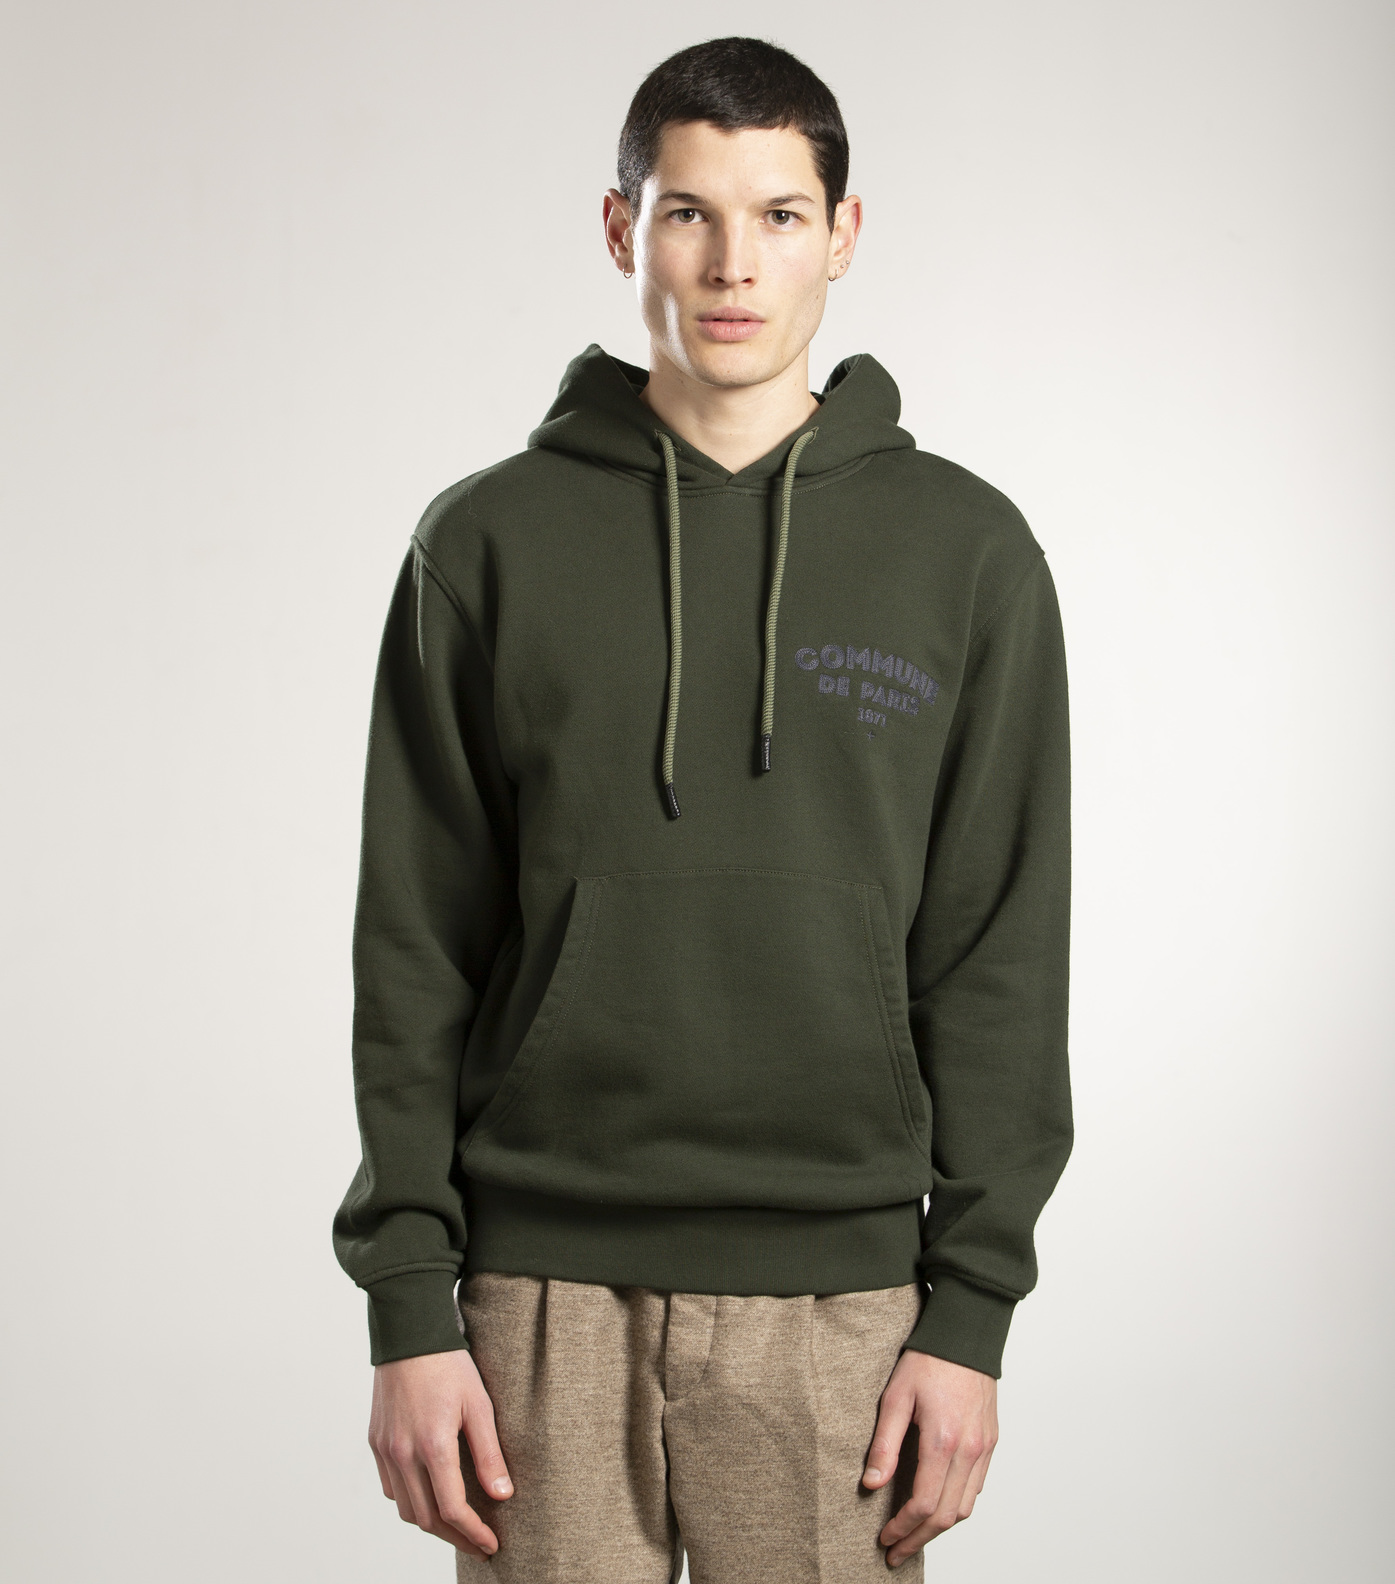 SWEAT A CAPUCHE ICI - Khaki